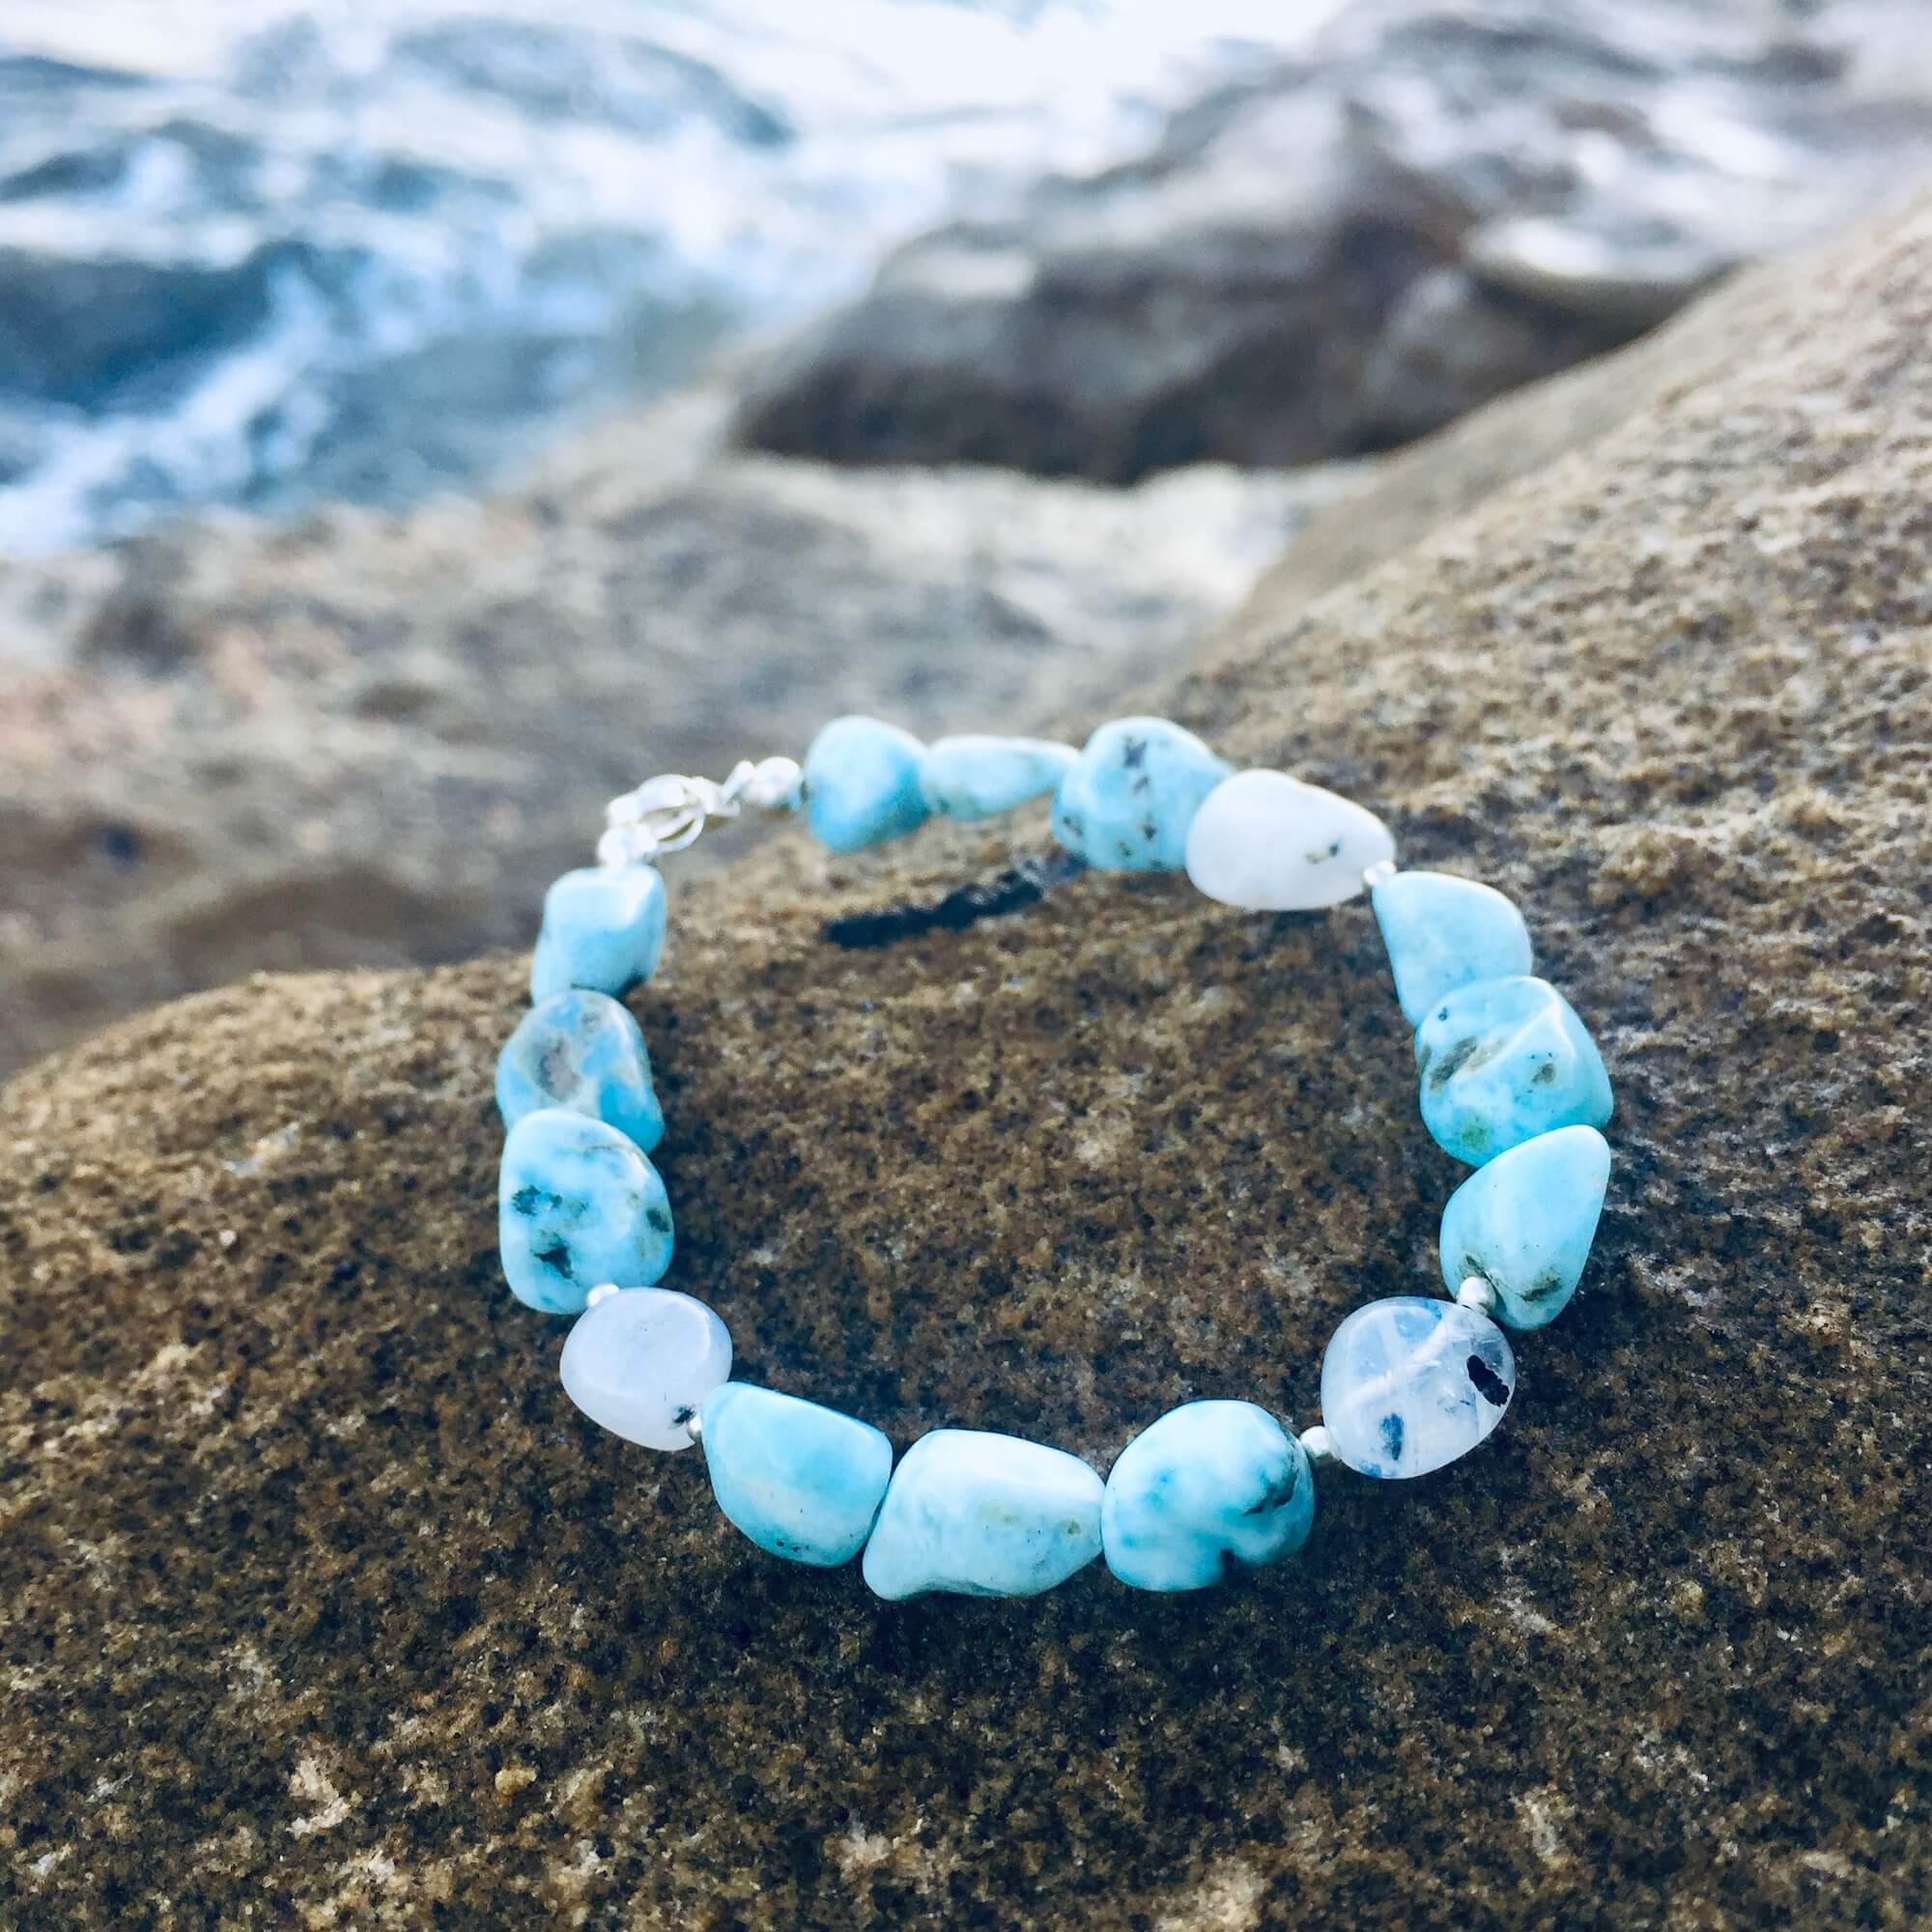 Larimar & Moonstone Bracelet Hand beaded by House of Aloha Central Coast NSW Australia